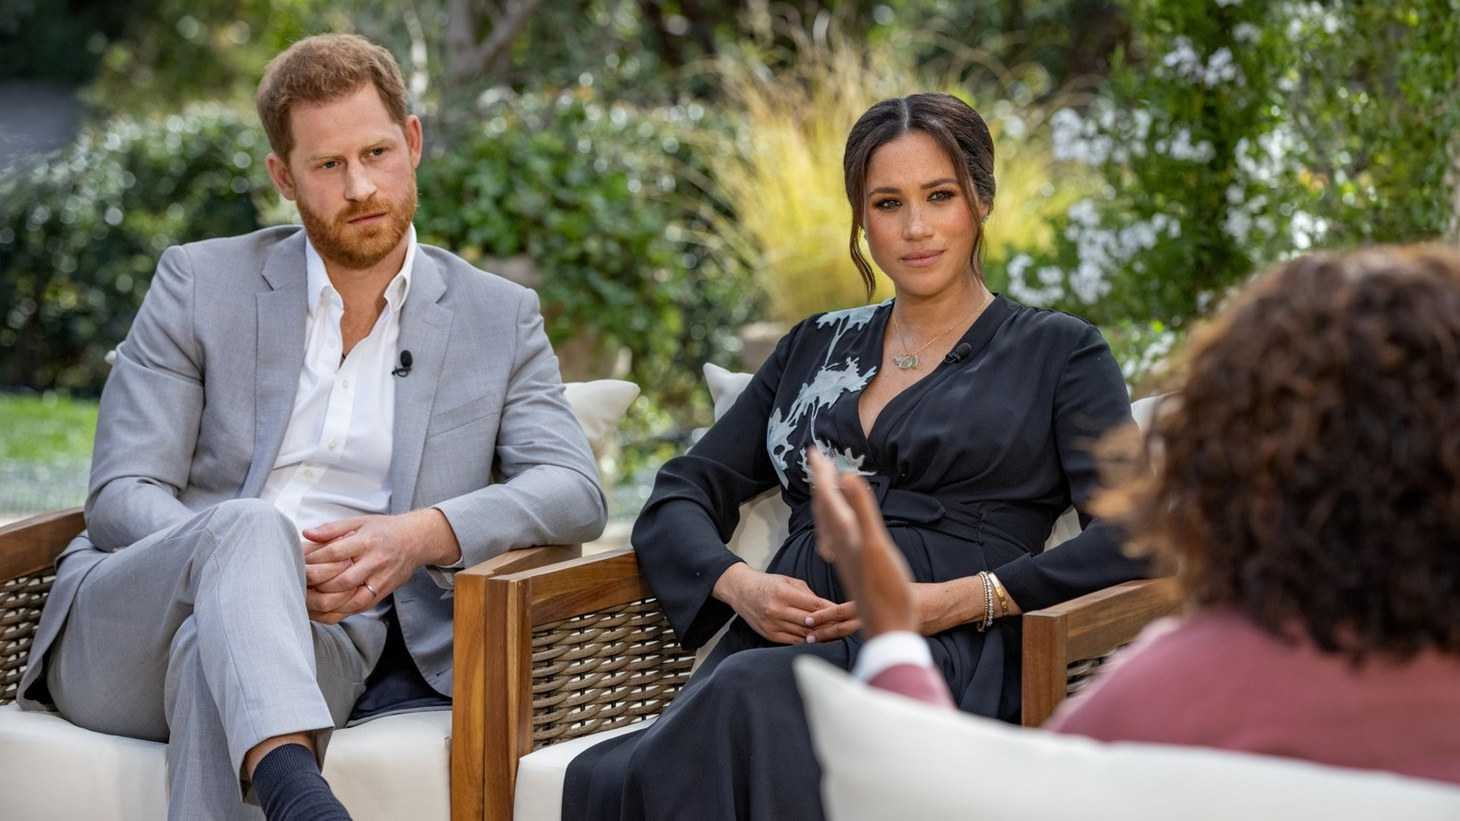 Britain's Prince Harry and Duchess of Sussex Meghan Markle sit down for an interview with Oprah Winfrey.